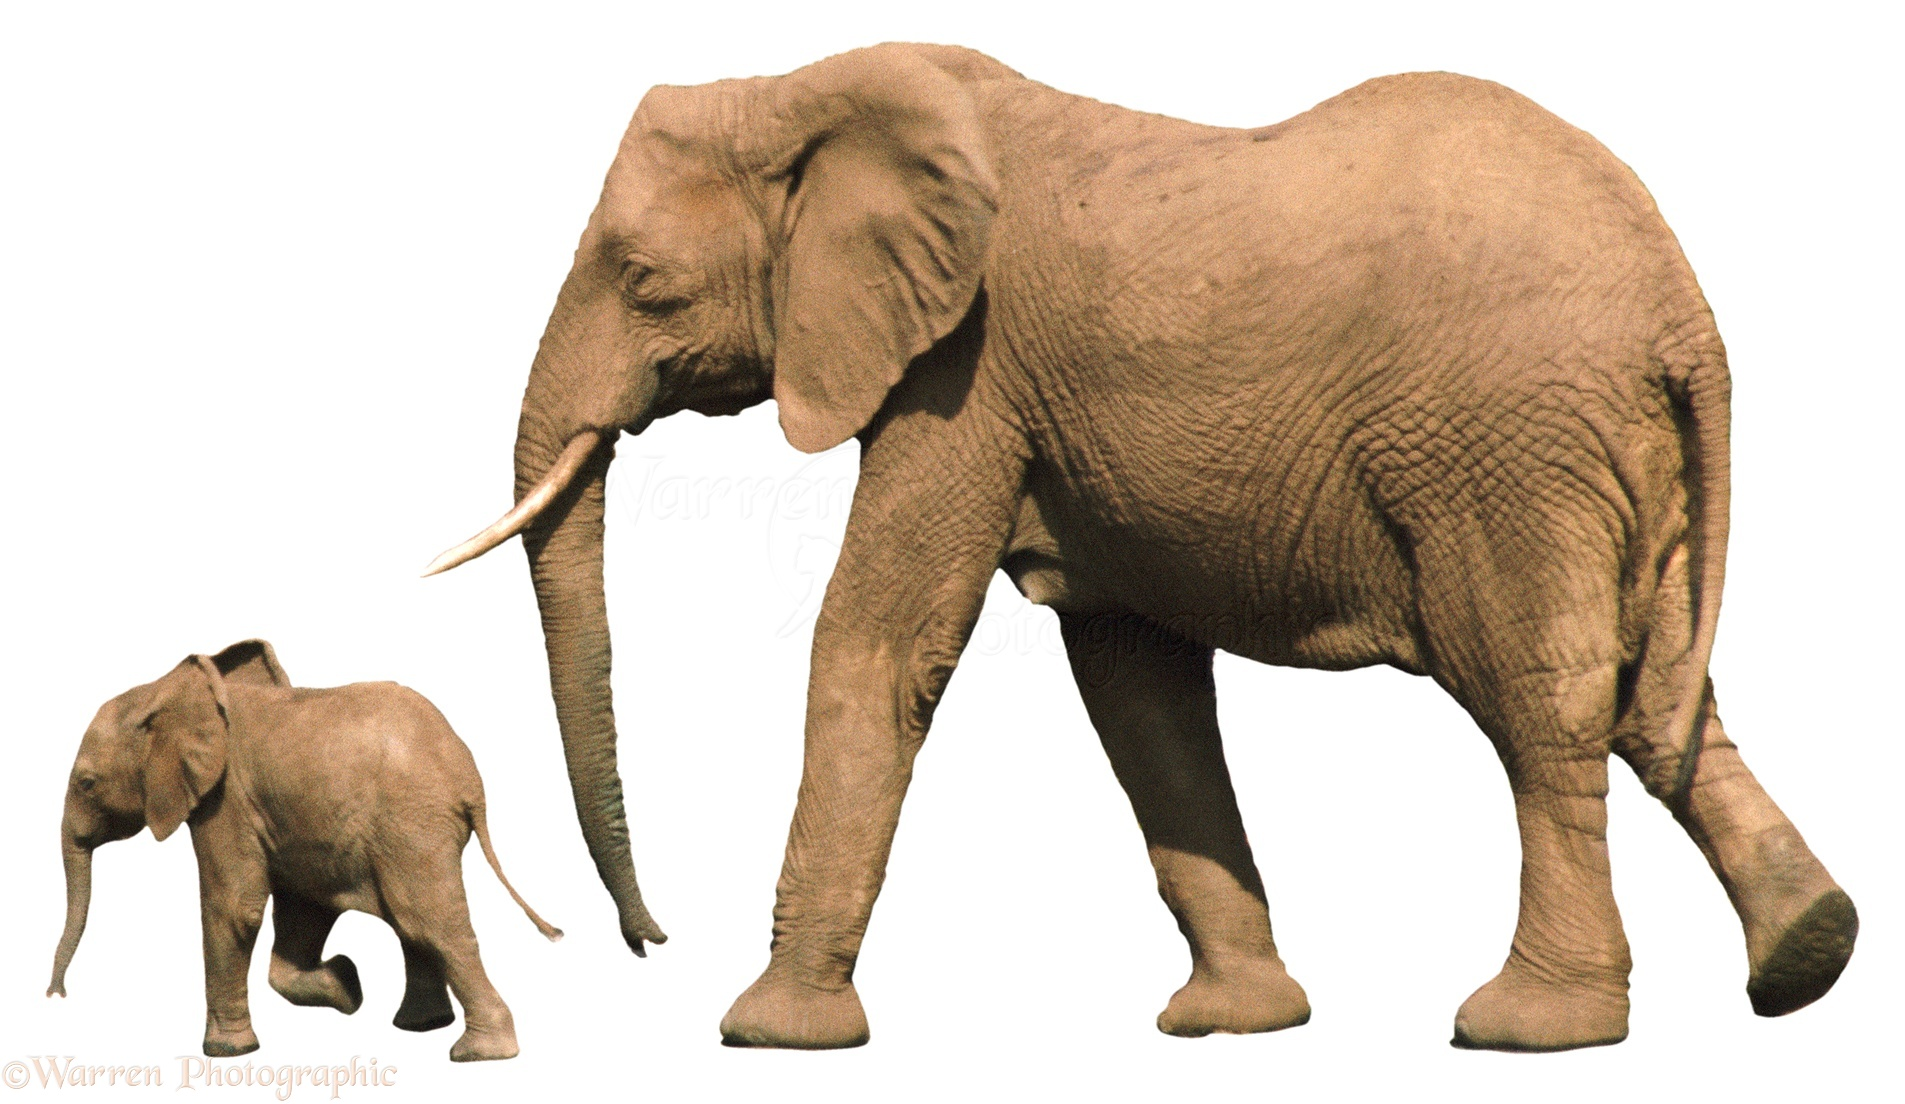 African Elephant With Baby Photo Wp00513 African elephant cartoon, run baby elephant png clipart. african elephant with baby photo wp00513